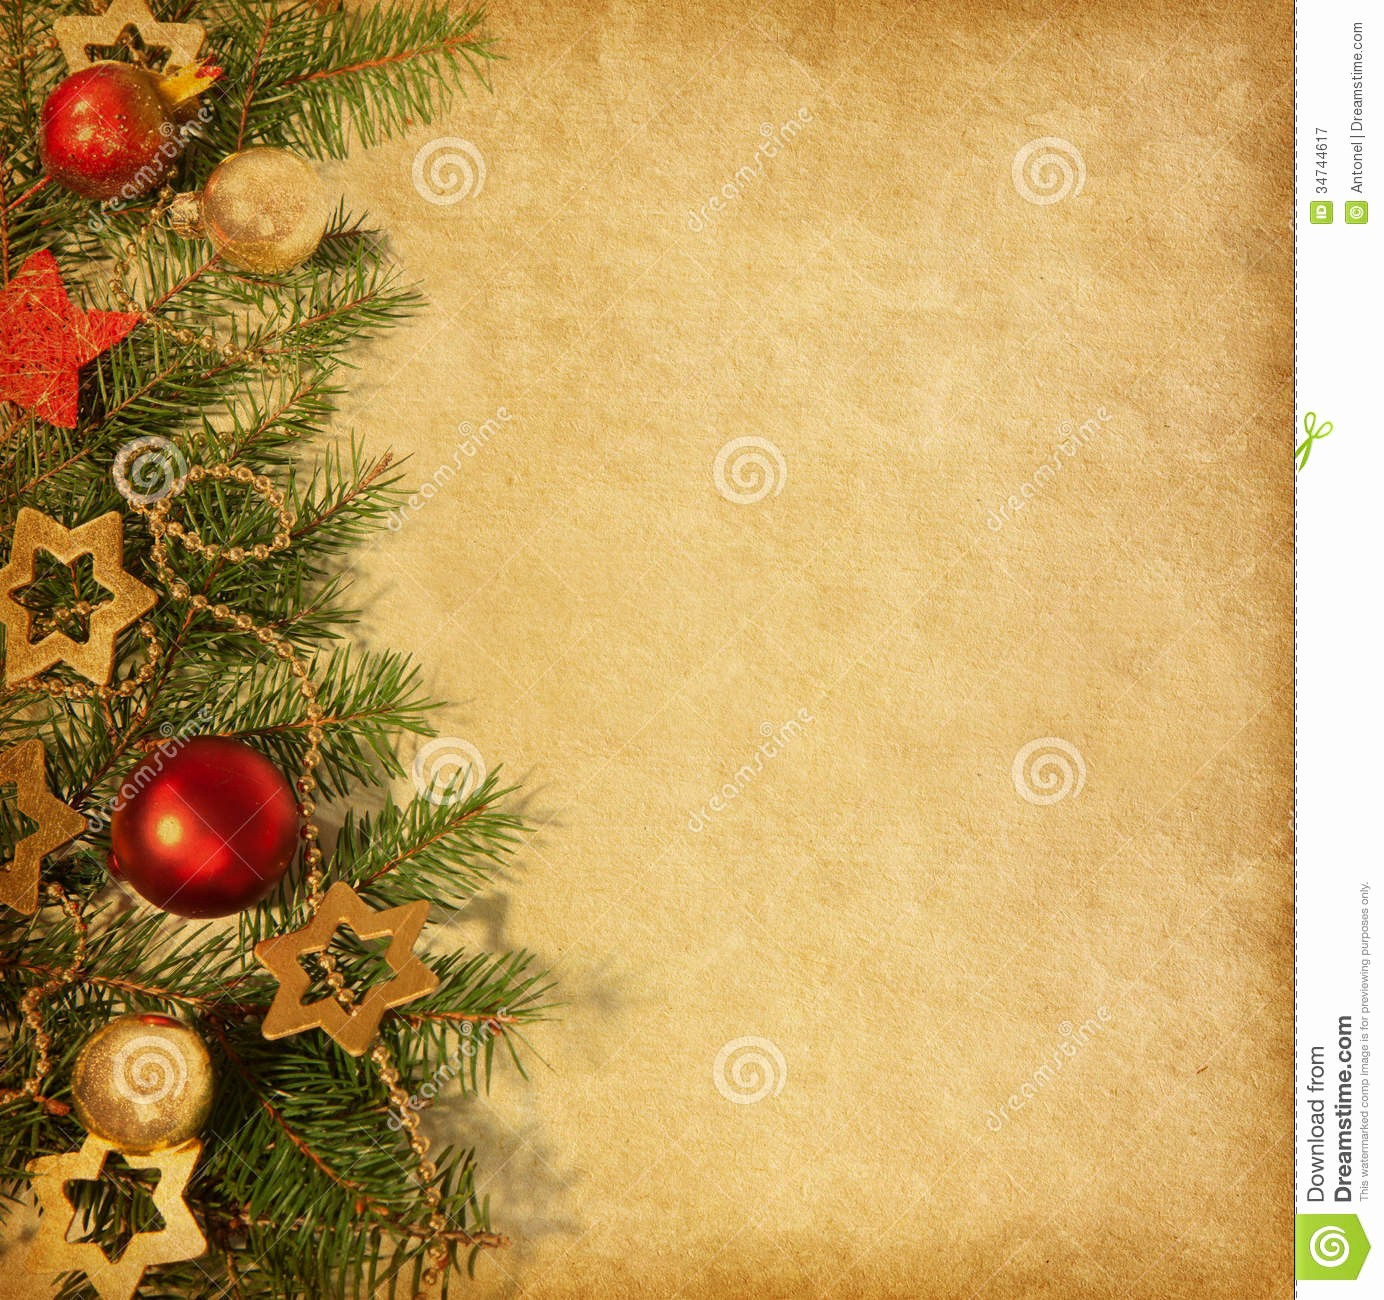 Christmas Background Images for Word Inspirational Christmas Border Stock Image Image Of Material Page